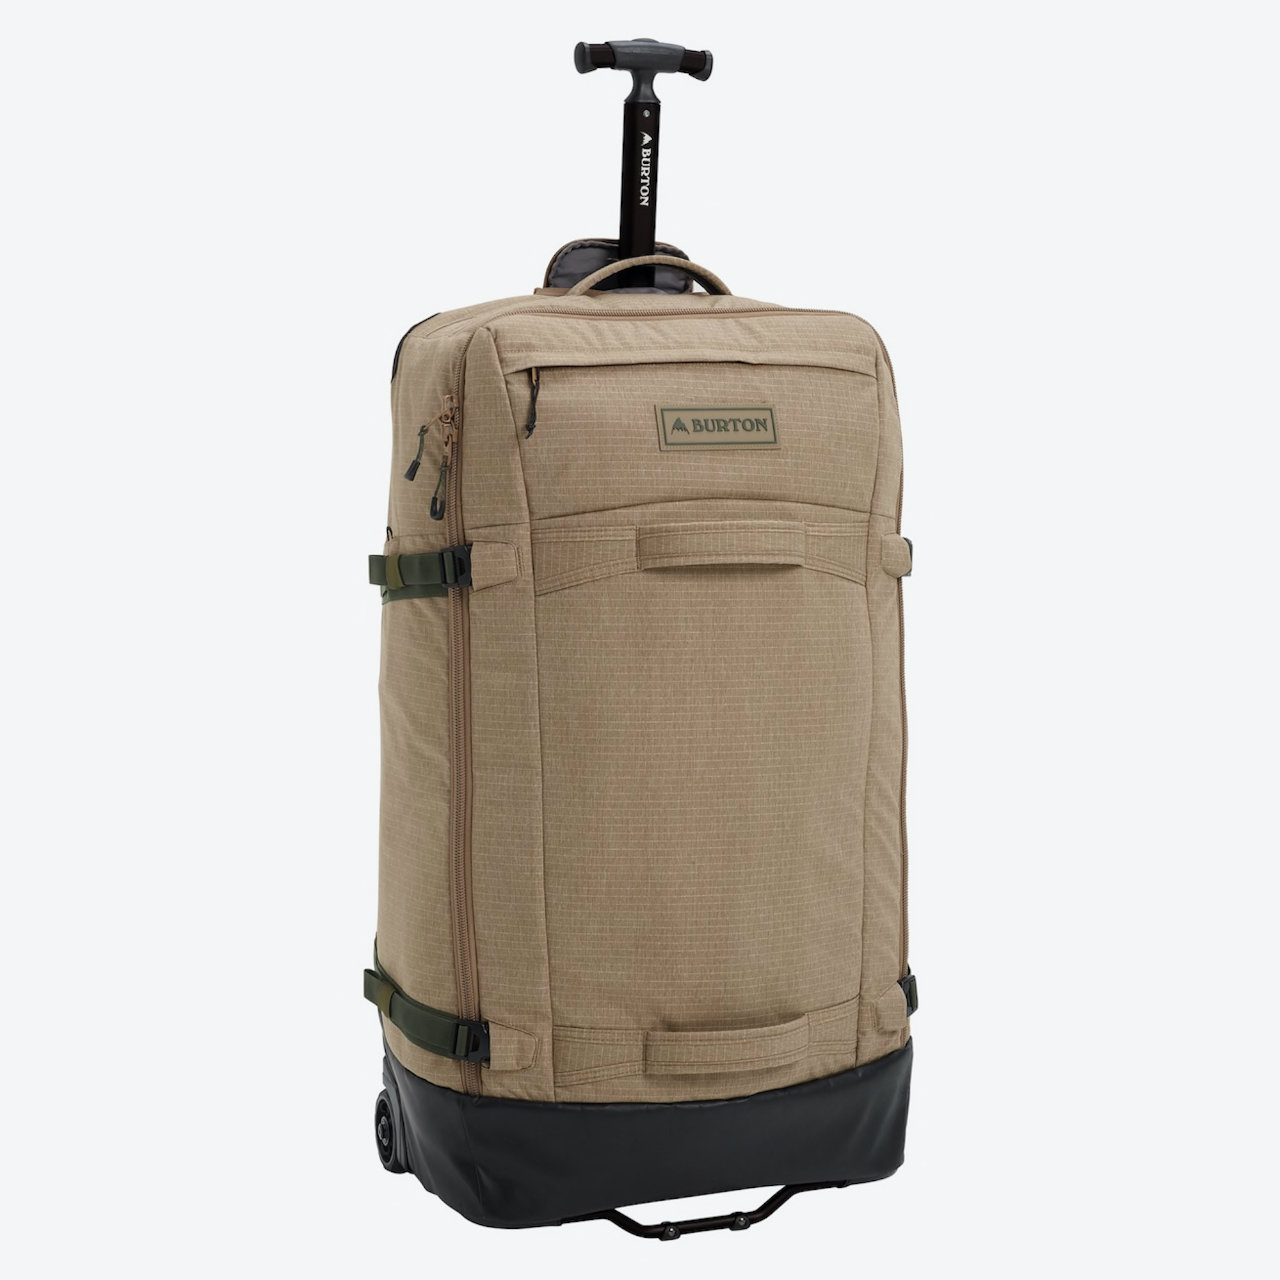 バートン Multipath 90L Checked Travel Bag(Timber Wolf Ripstop)